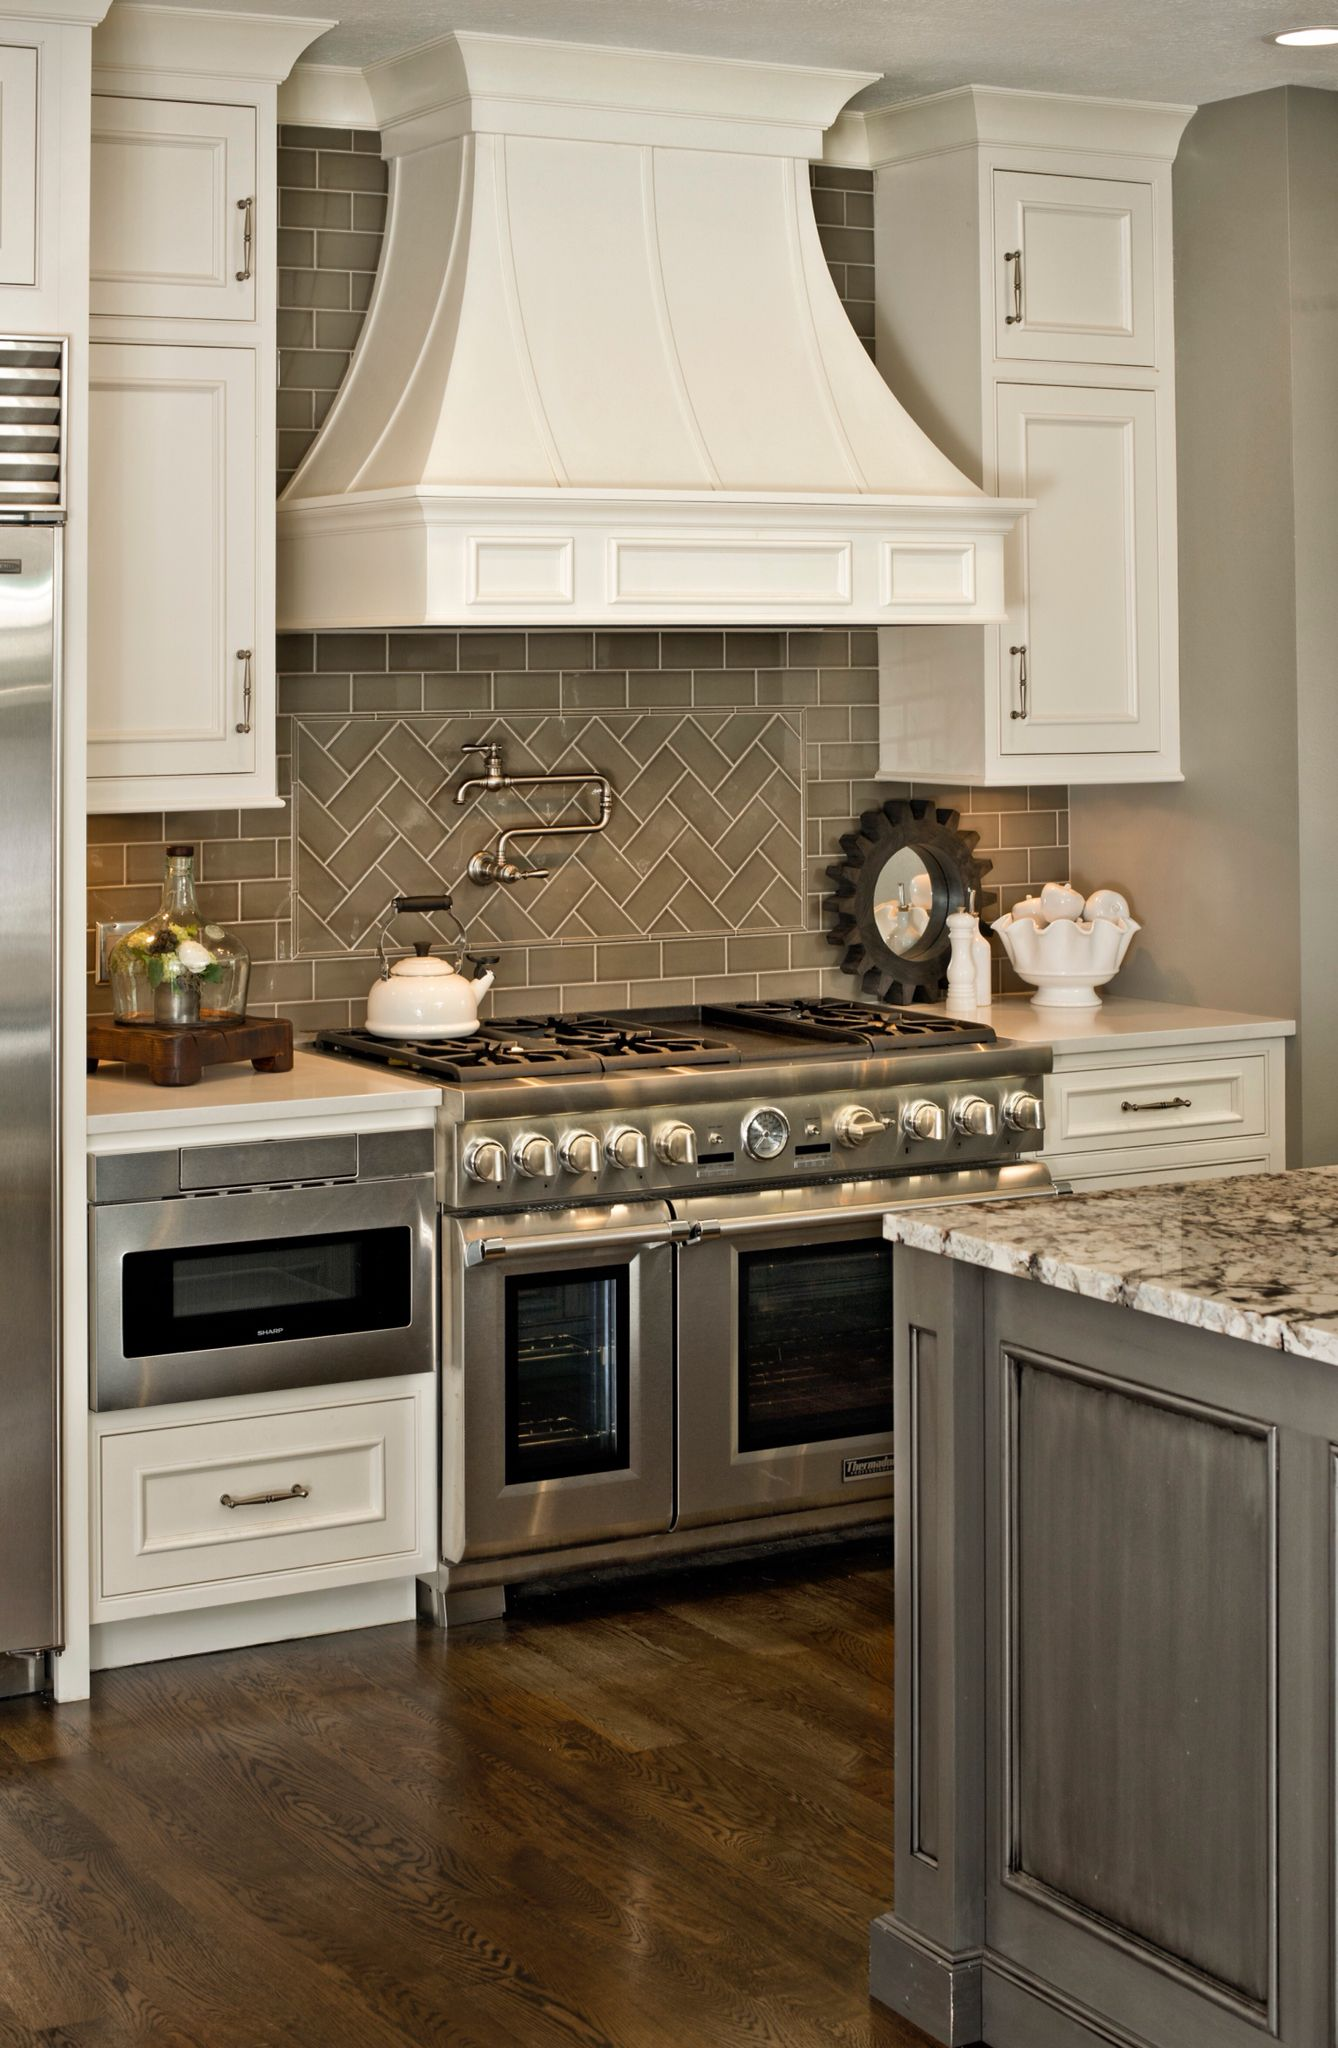 Best Gray And White Kitchen With Herringbone Subway Tile 640 x 480